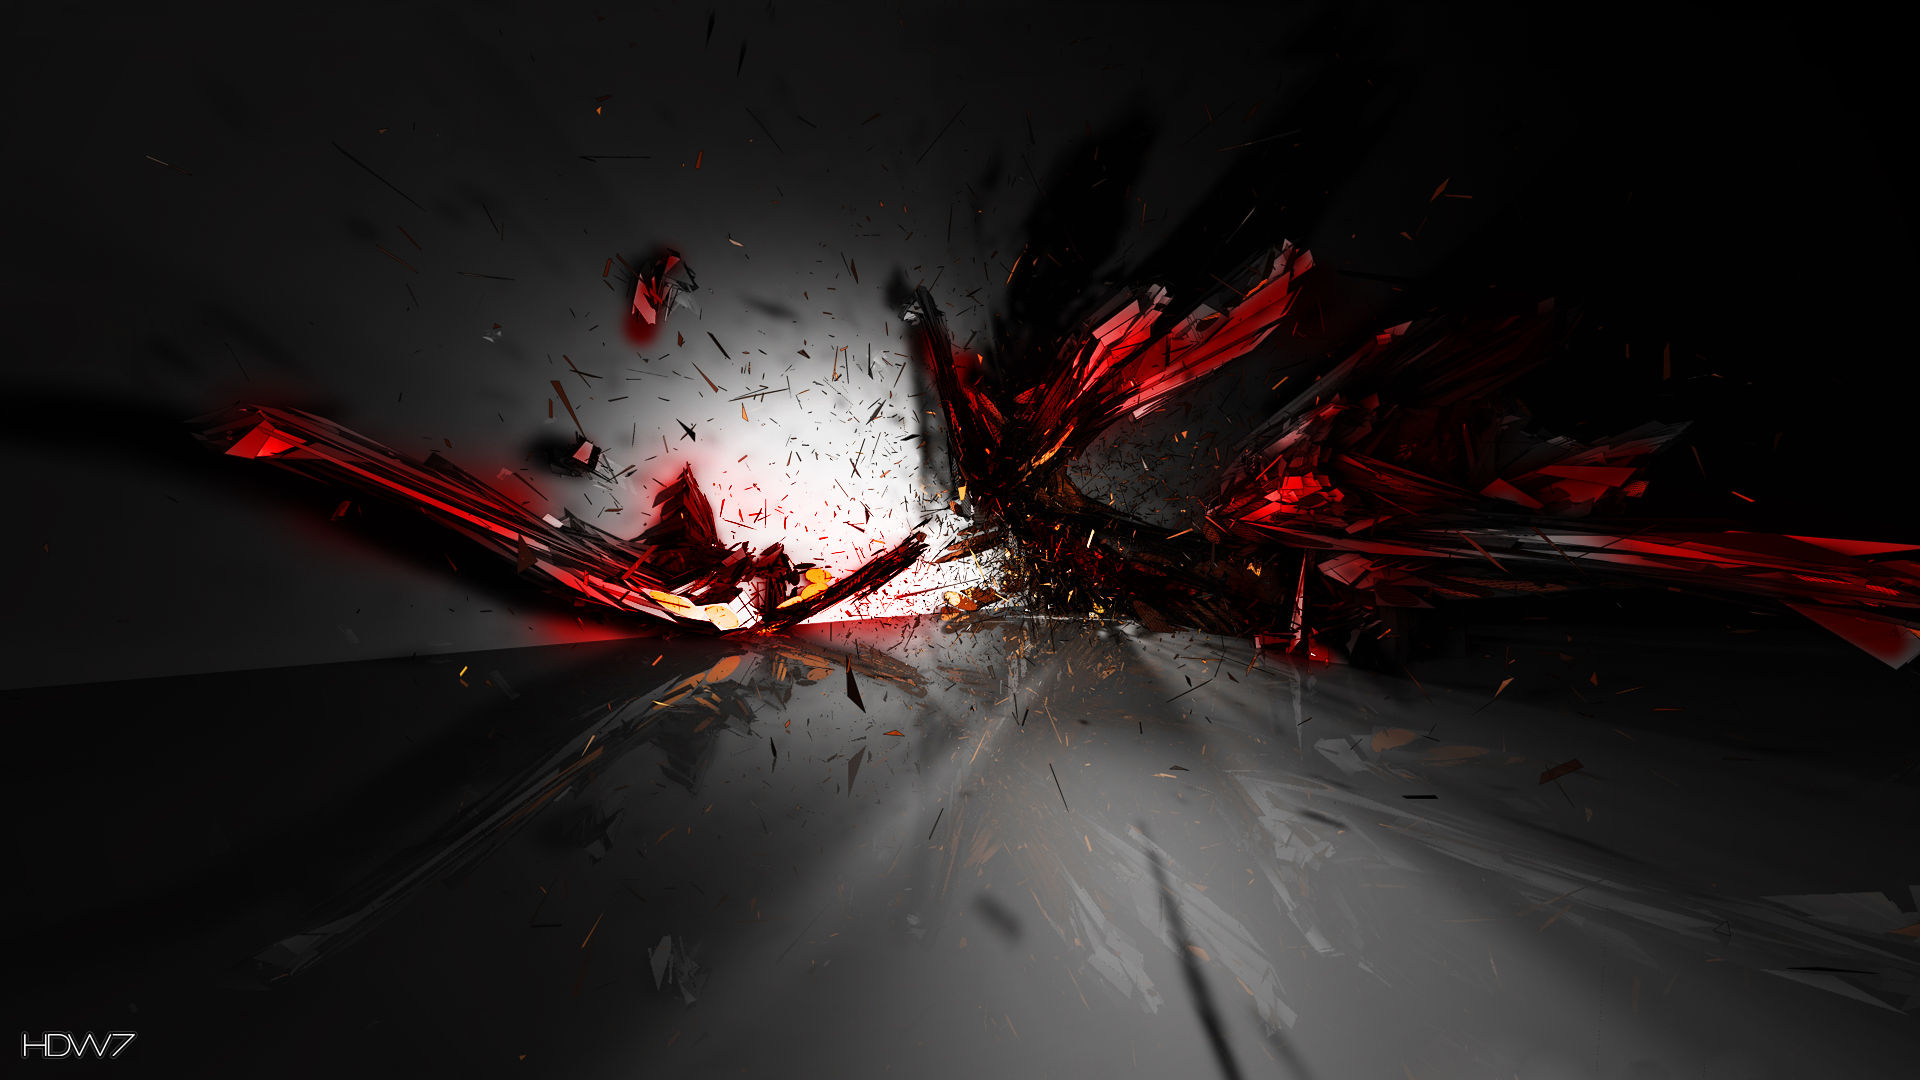 Hd wallpaper red and black - 3d Abstract Red Black Explosion Impressive